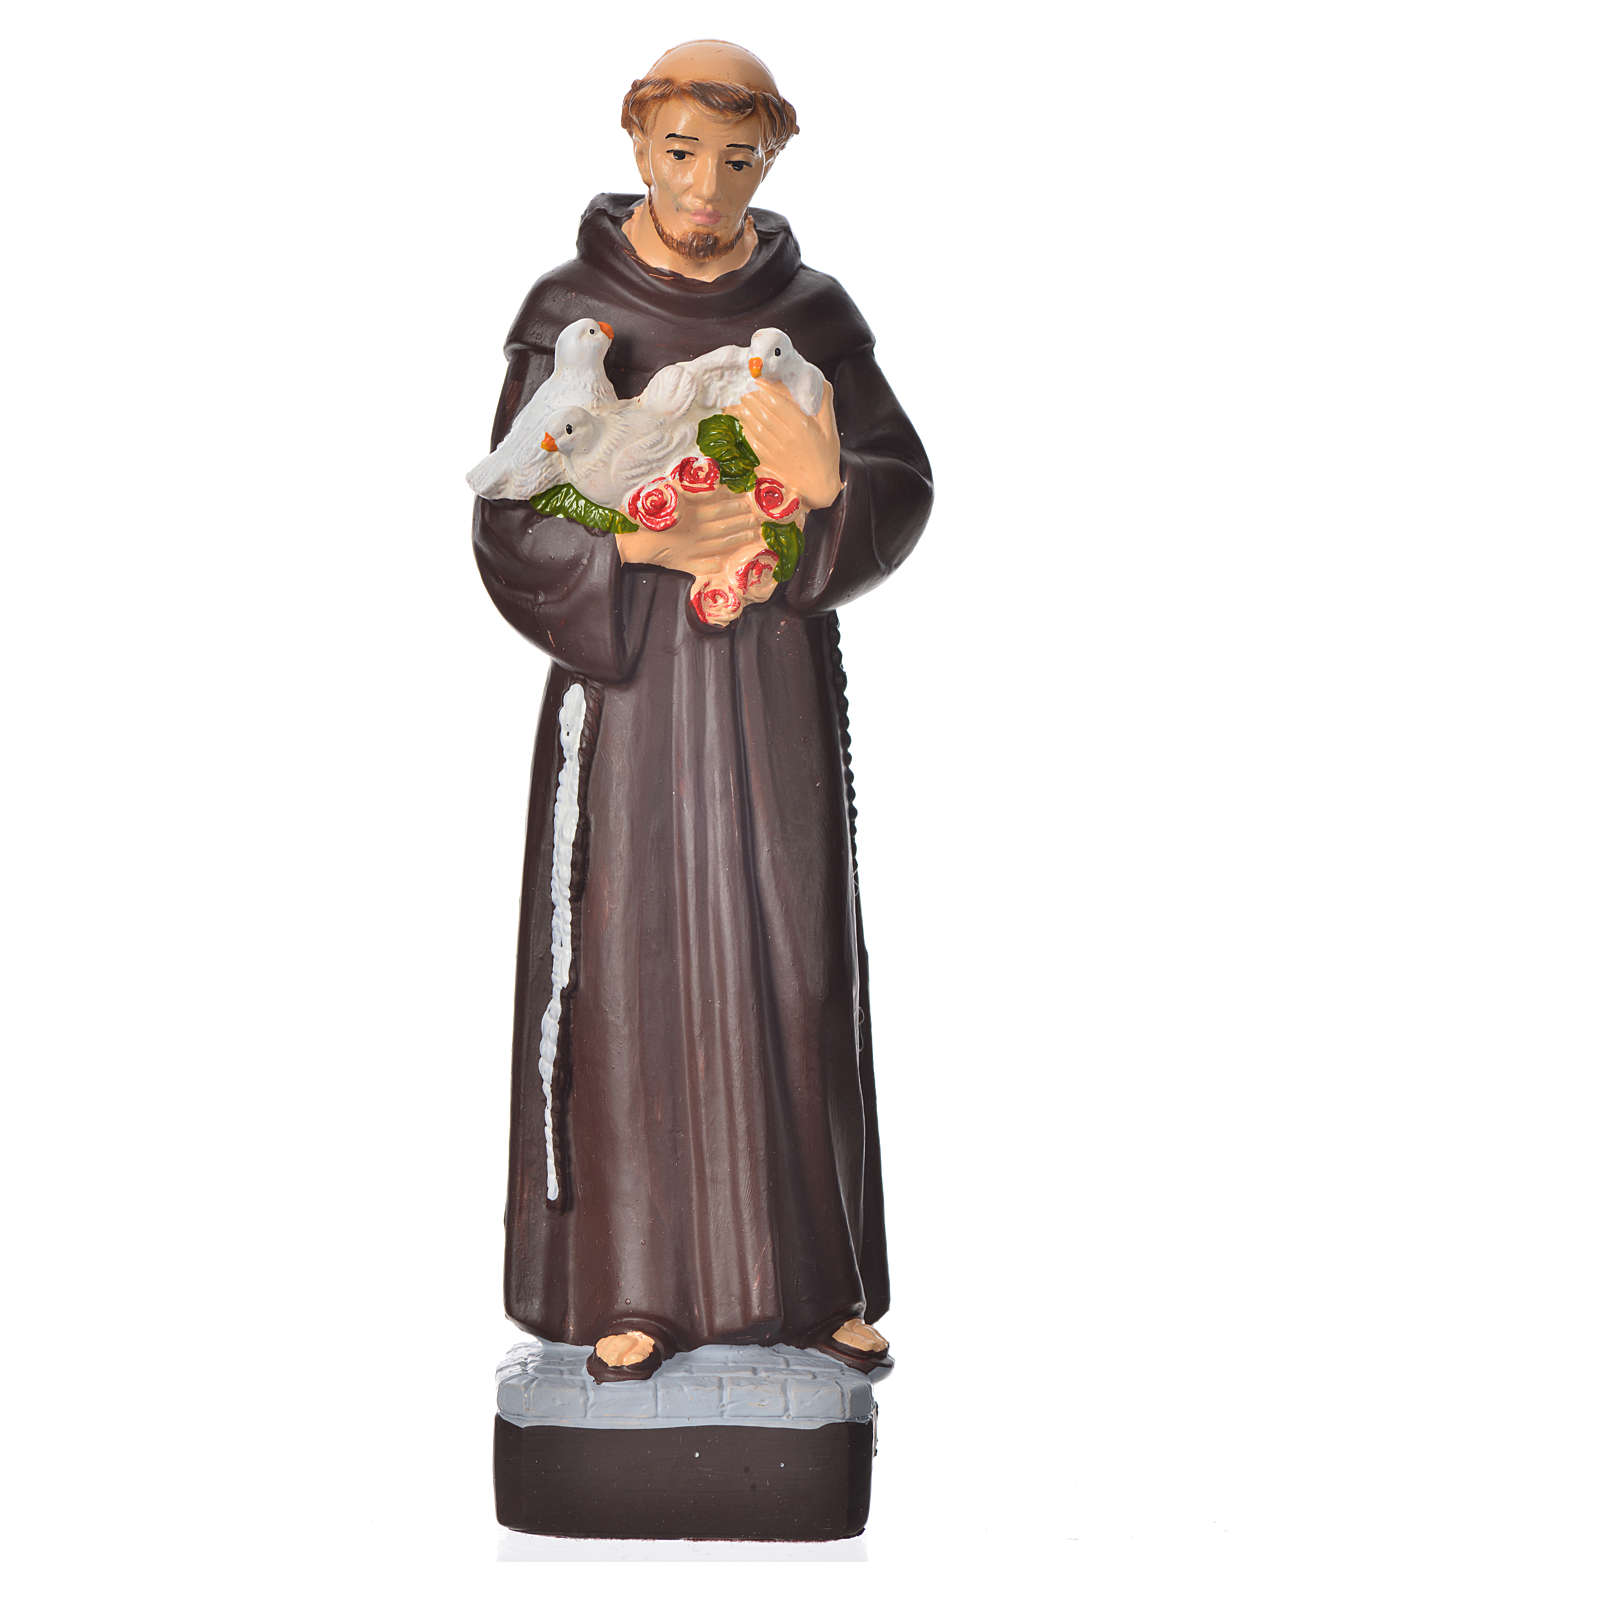 Saint Francis of Assisi 16cm, unbreakable material 4